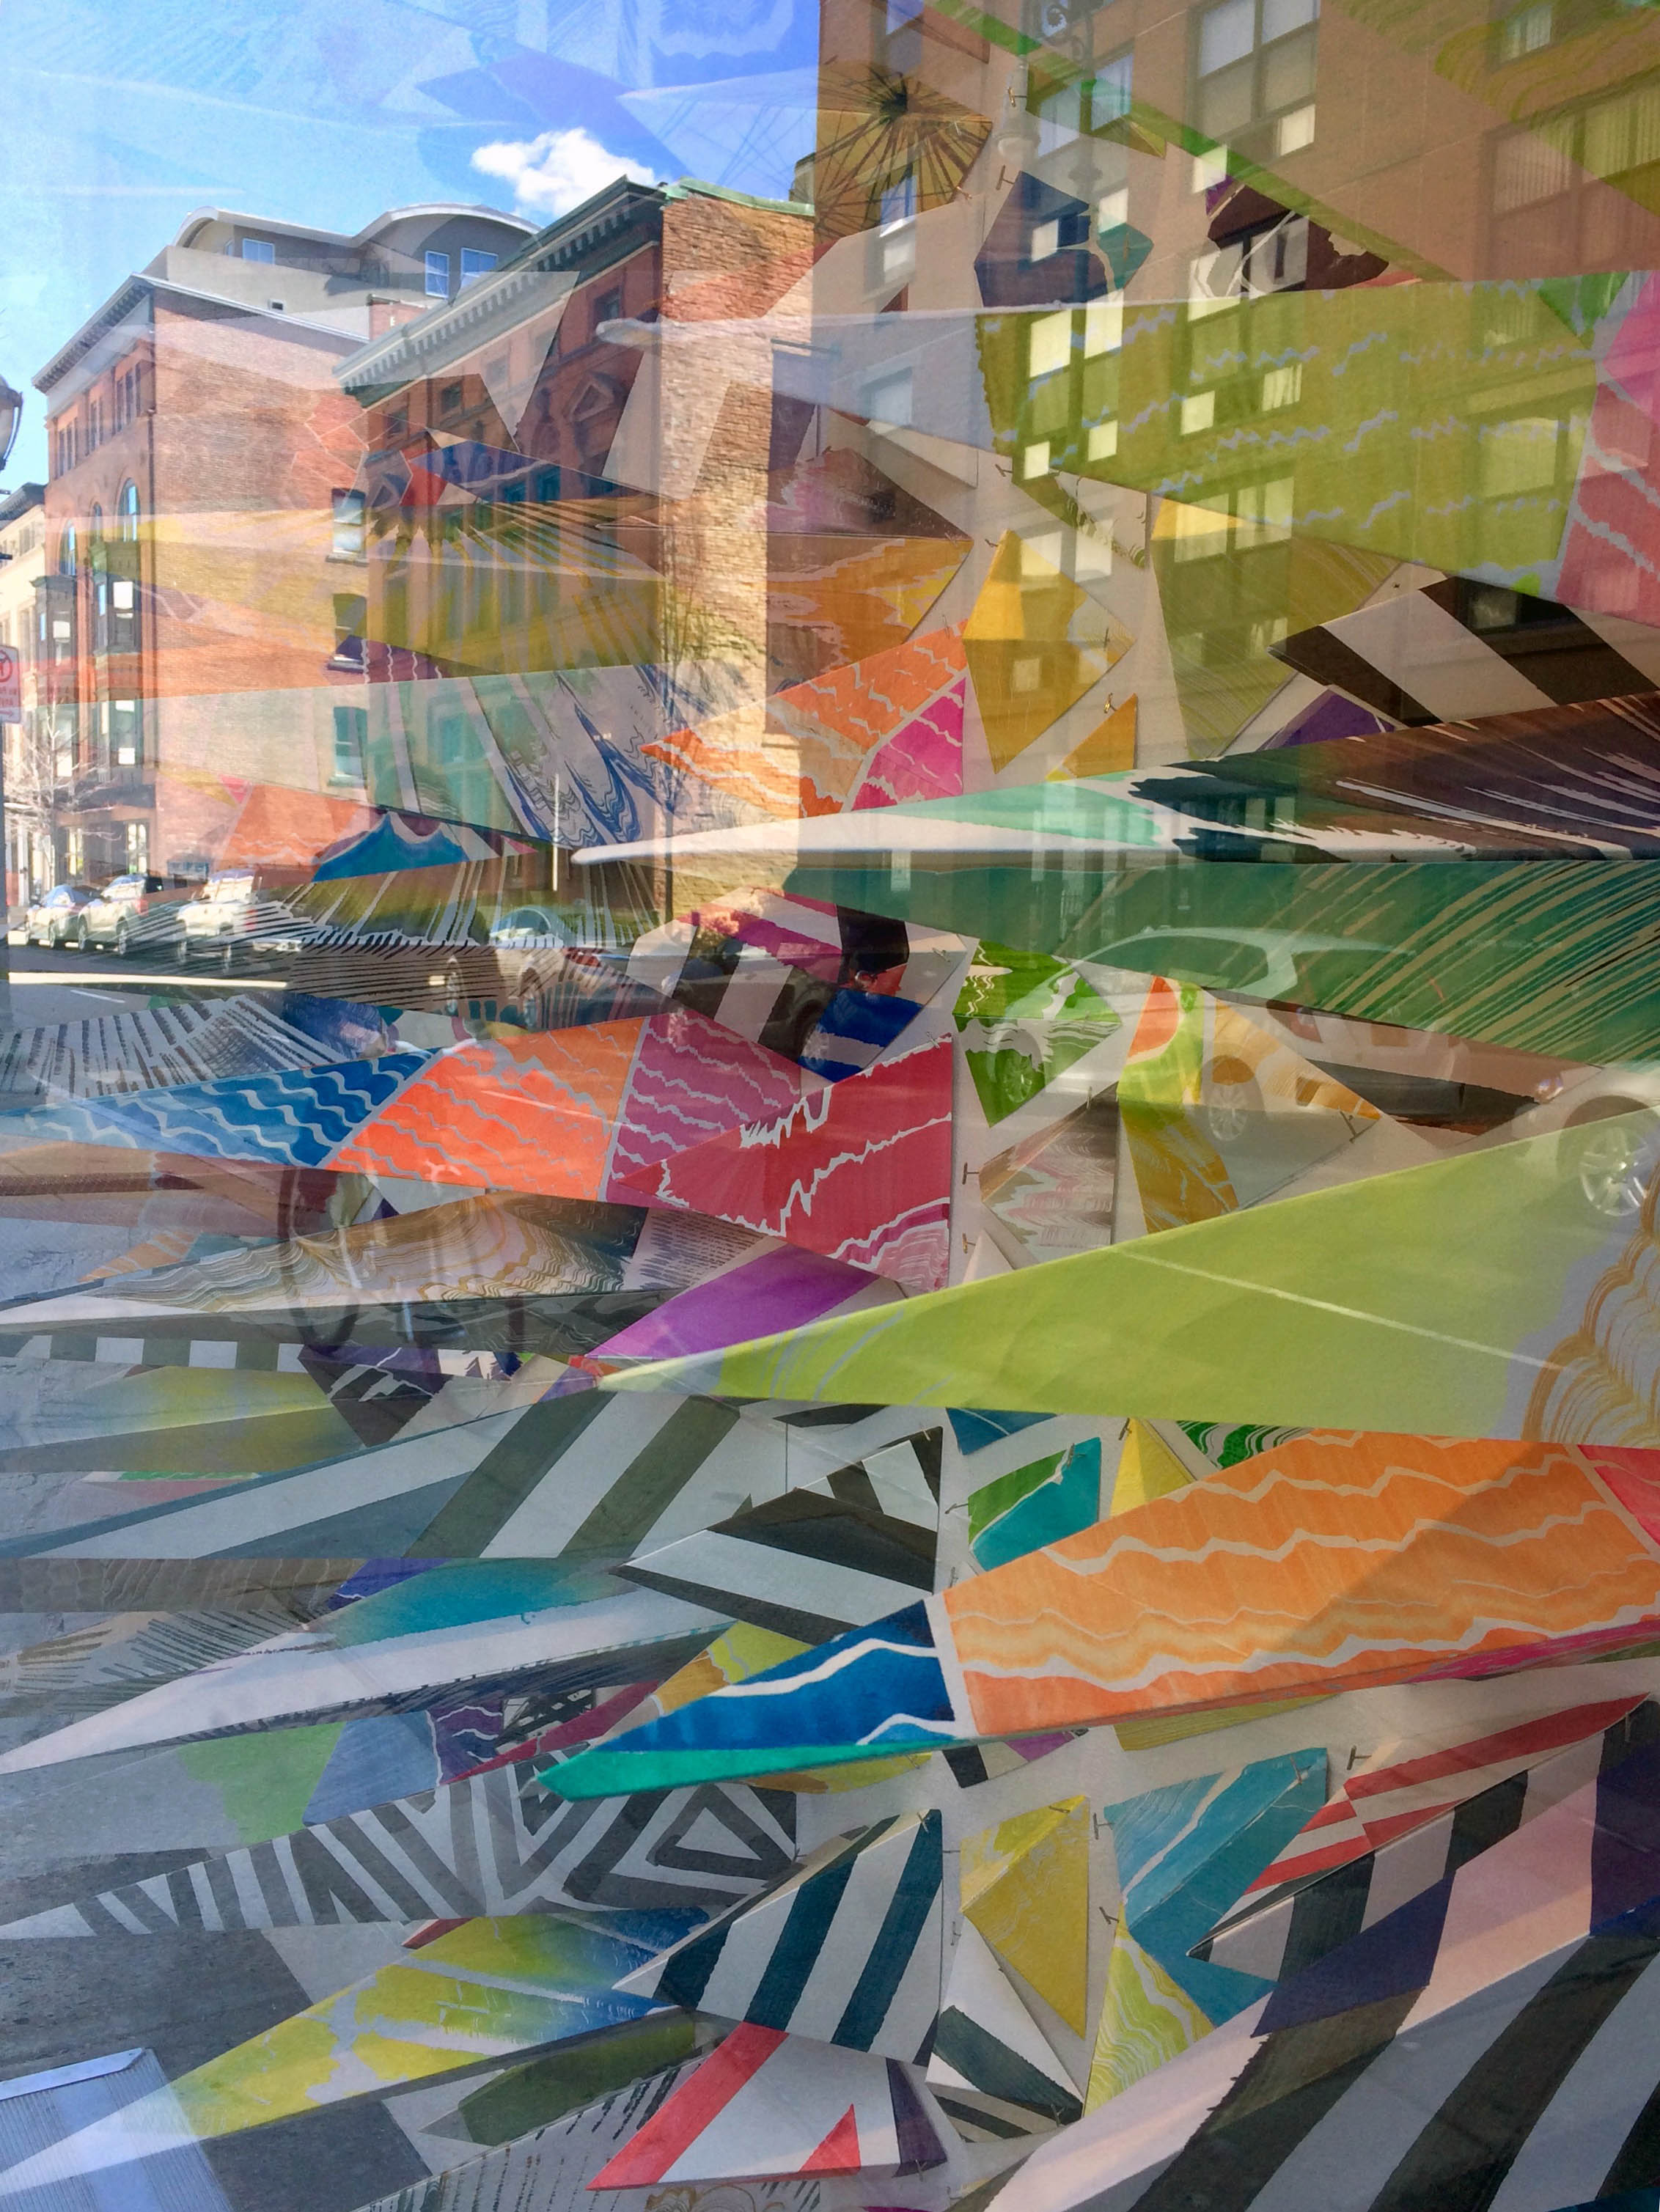 A view of the installation from outside with the reflections of the city